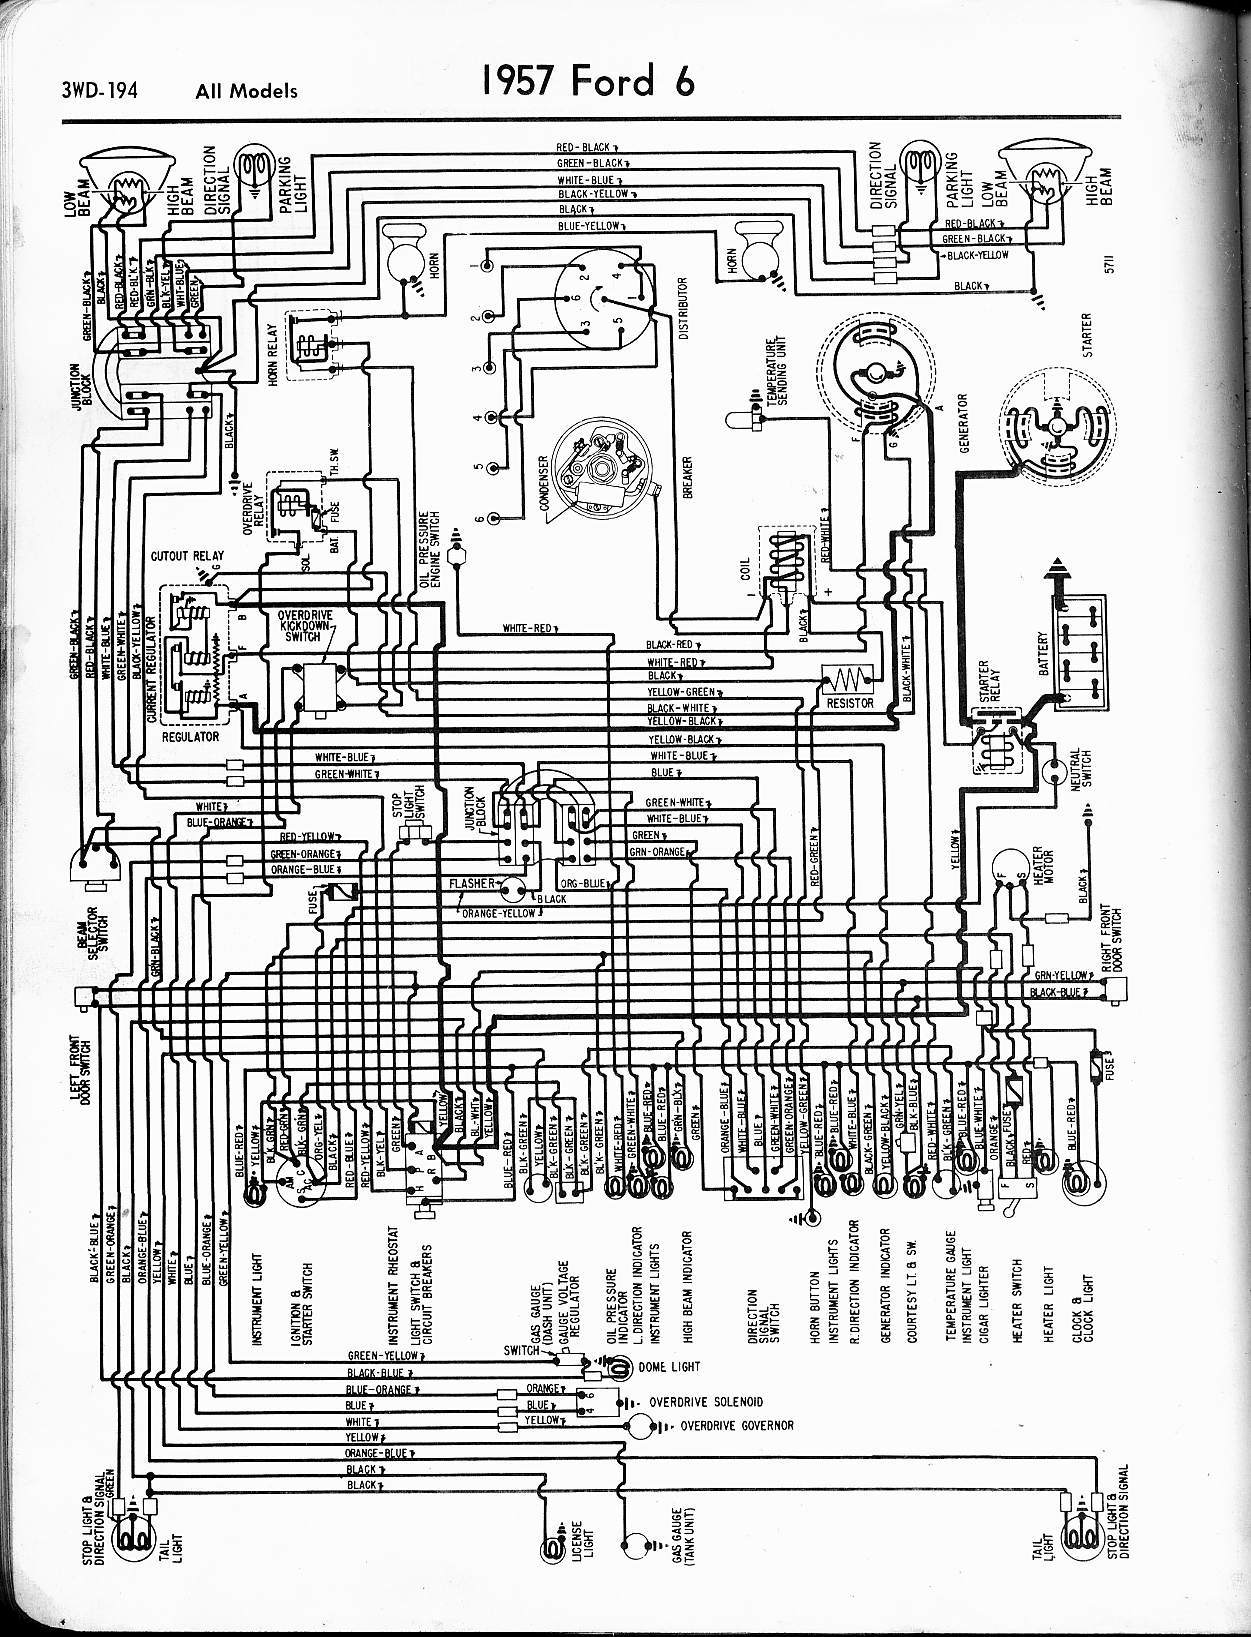 hight resolution of universal turn signal switch diagram wwwfordtruckscom forums 1957 ford turn signal wiring diagram wiring library universal